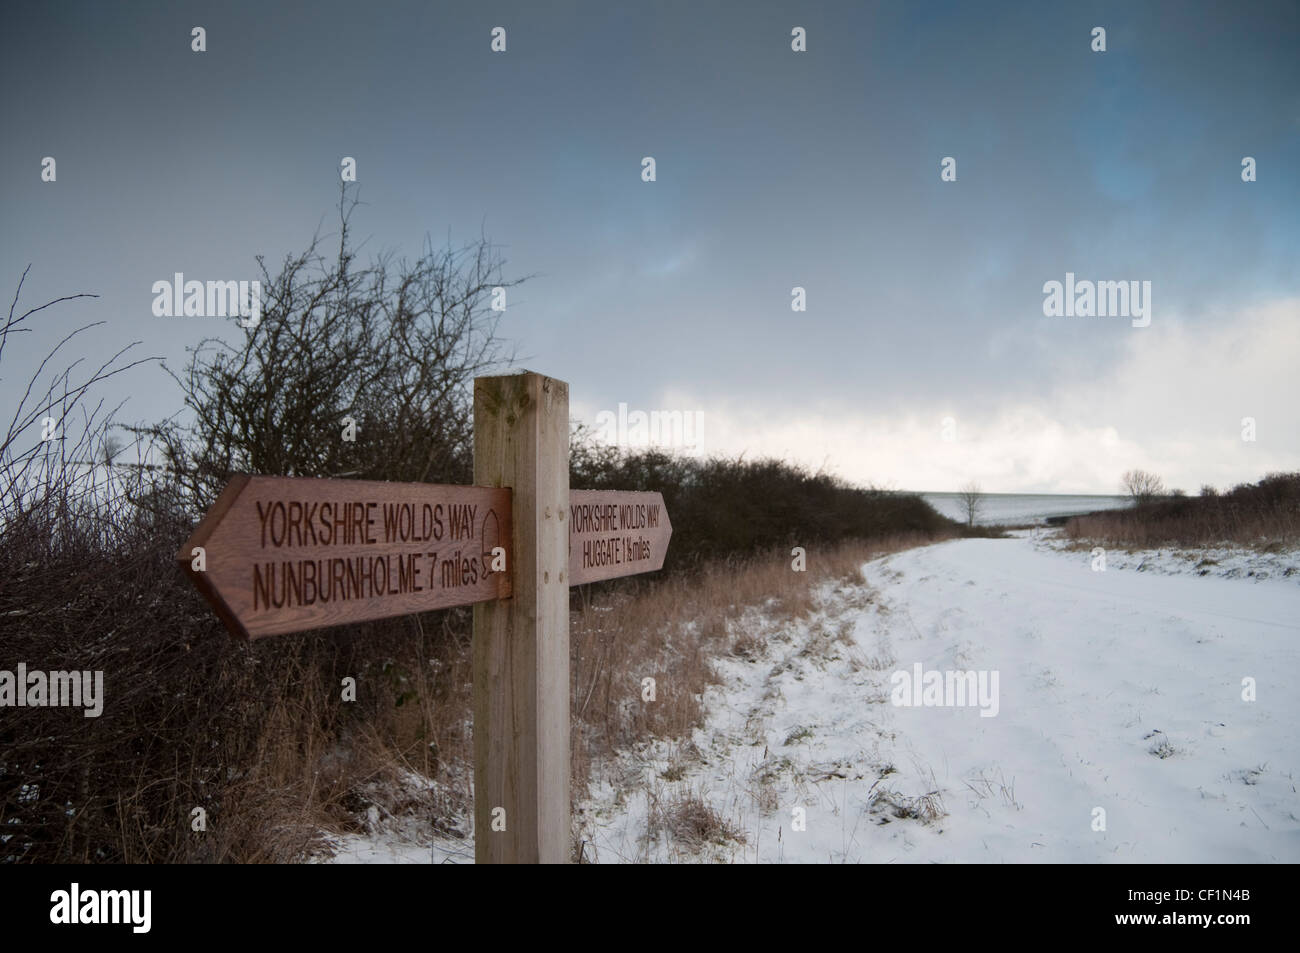 Signpost on the long distance footpath called Yorkshire Wolds Way, between the Yorkshire Wolds villages of Nunburnholme Stock Photo